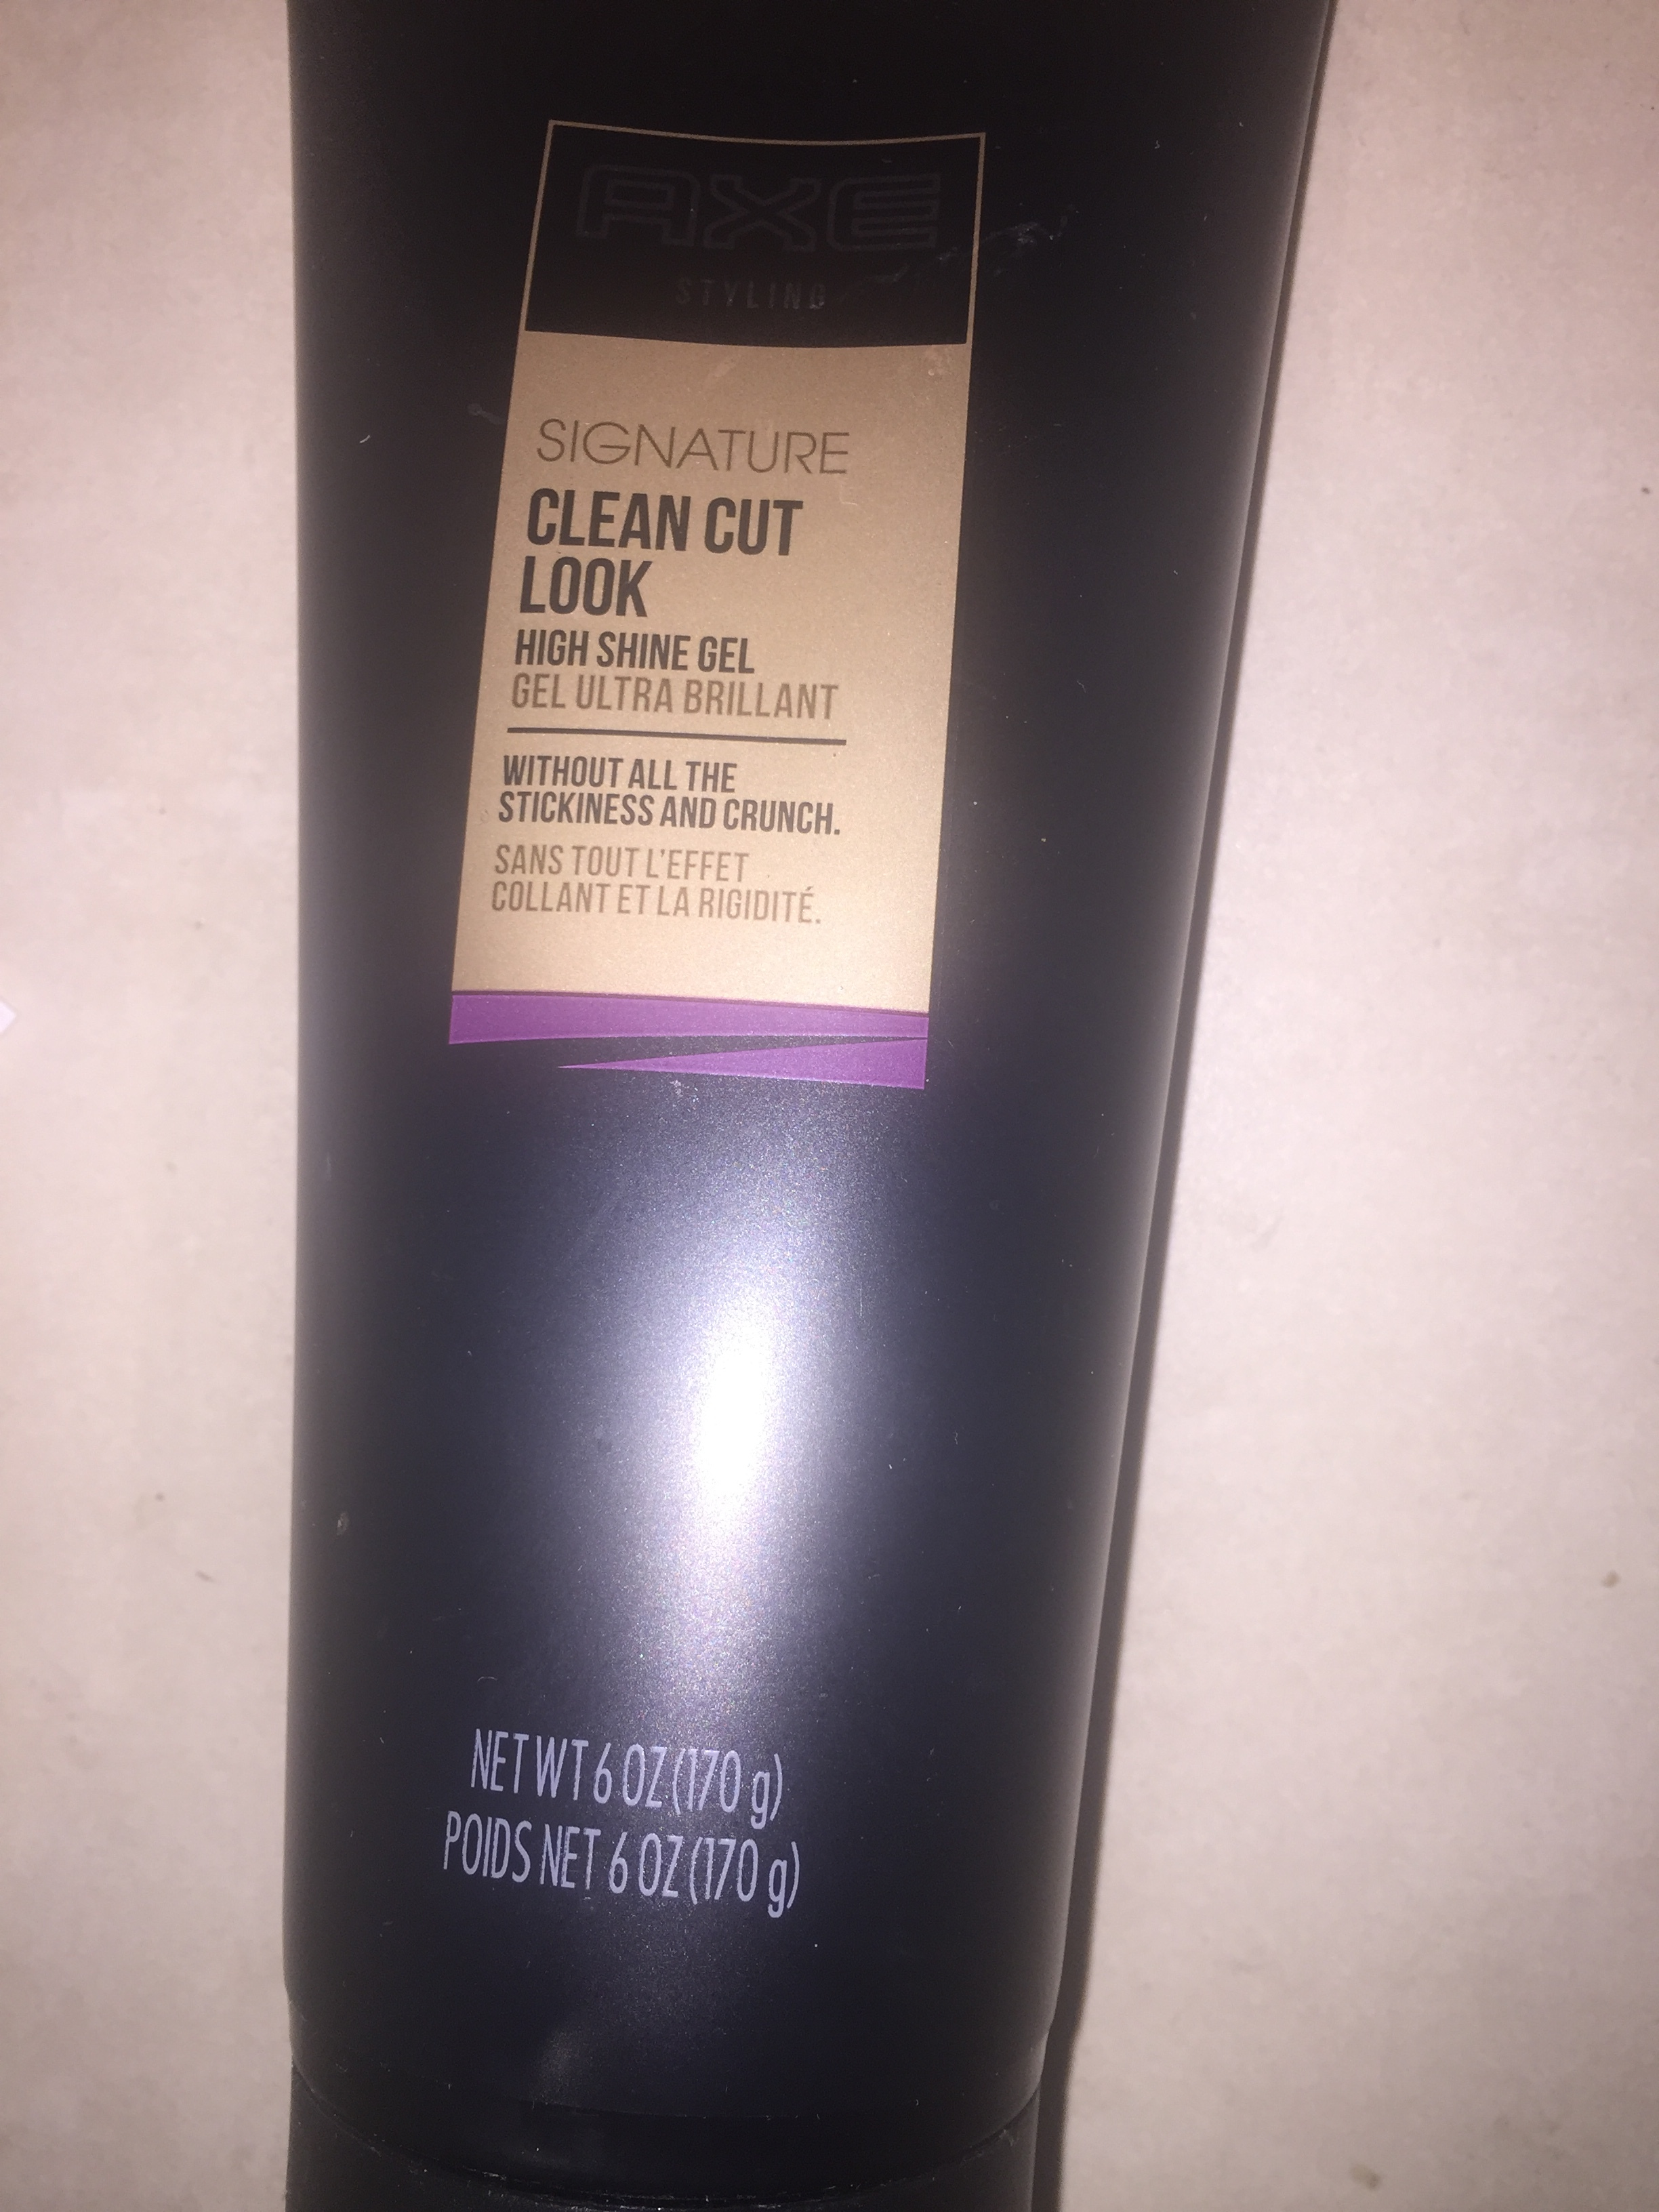 Axe Hair Products: A Review - LiveAbout